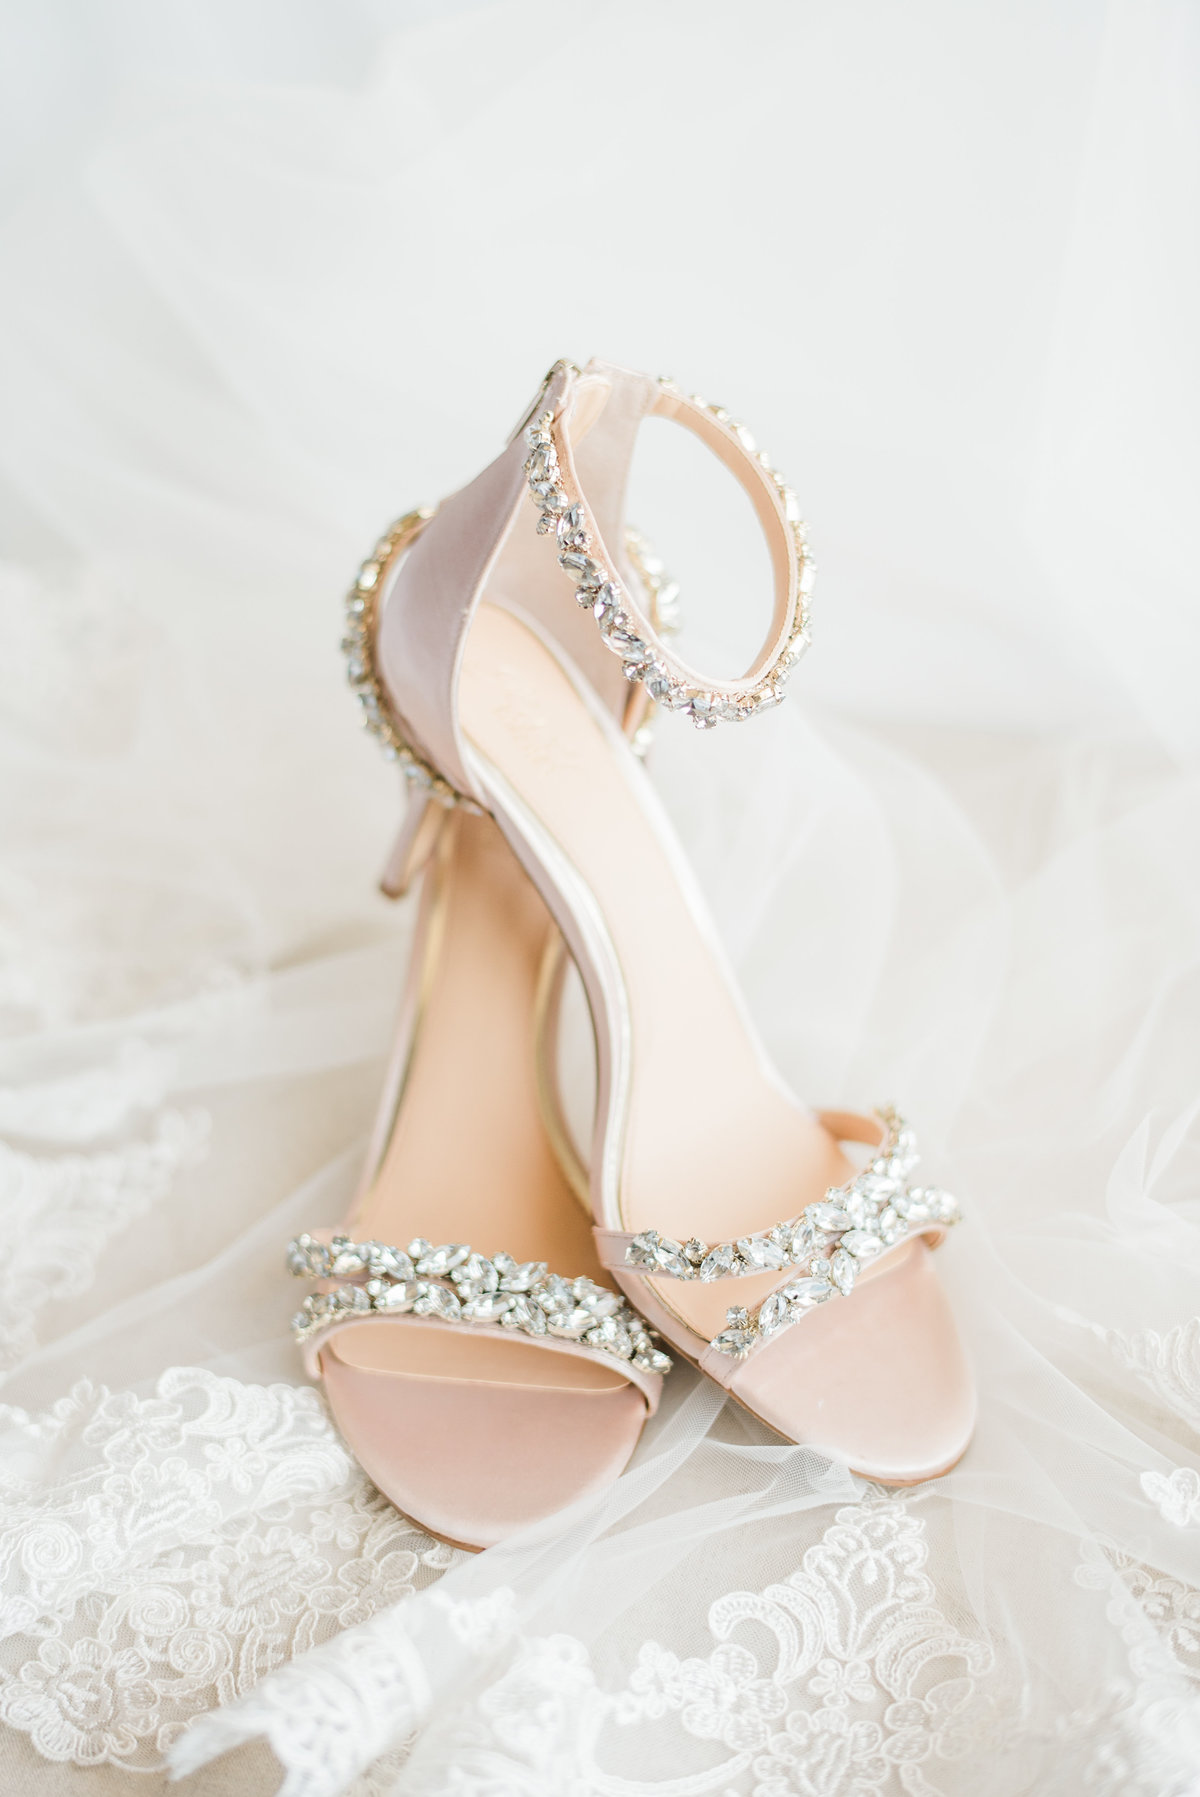 Bridal Shoe details photo